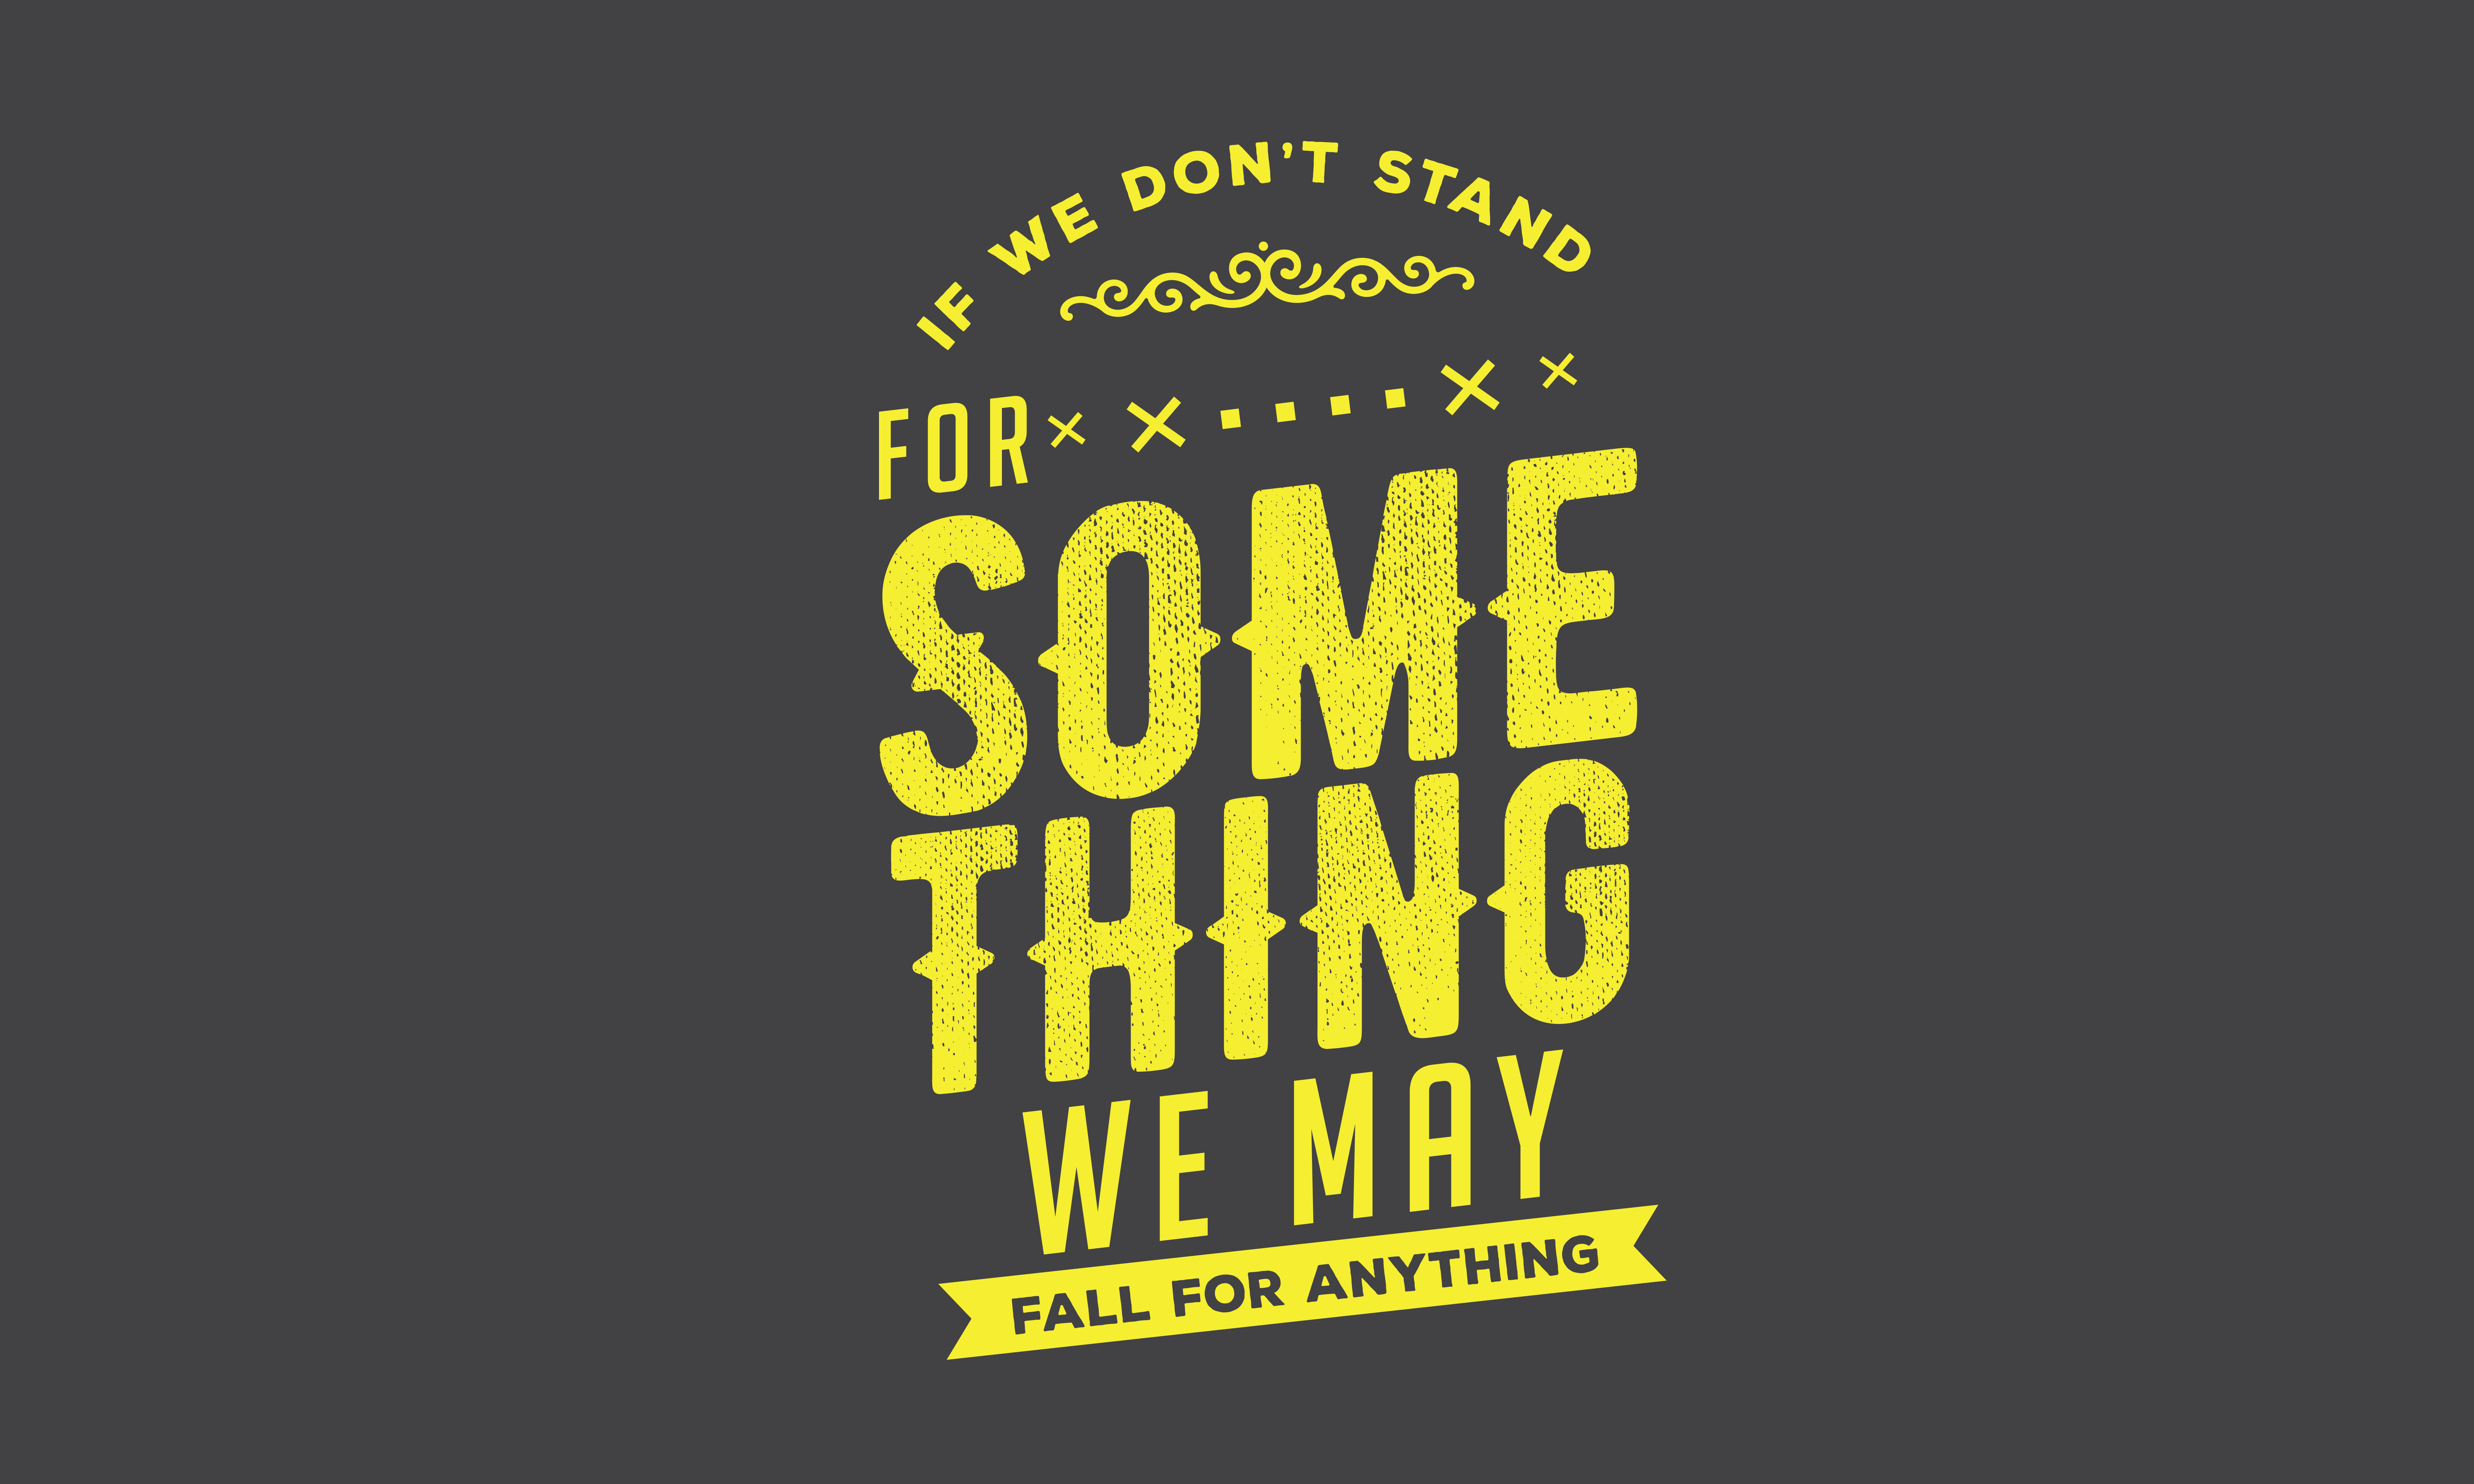 Download Free We May Fall For Everything Graphic By Baraeiji Creative Fabrica for Cricut Explore, Silhouette and other cutting machines.